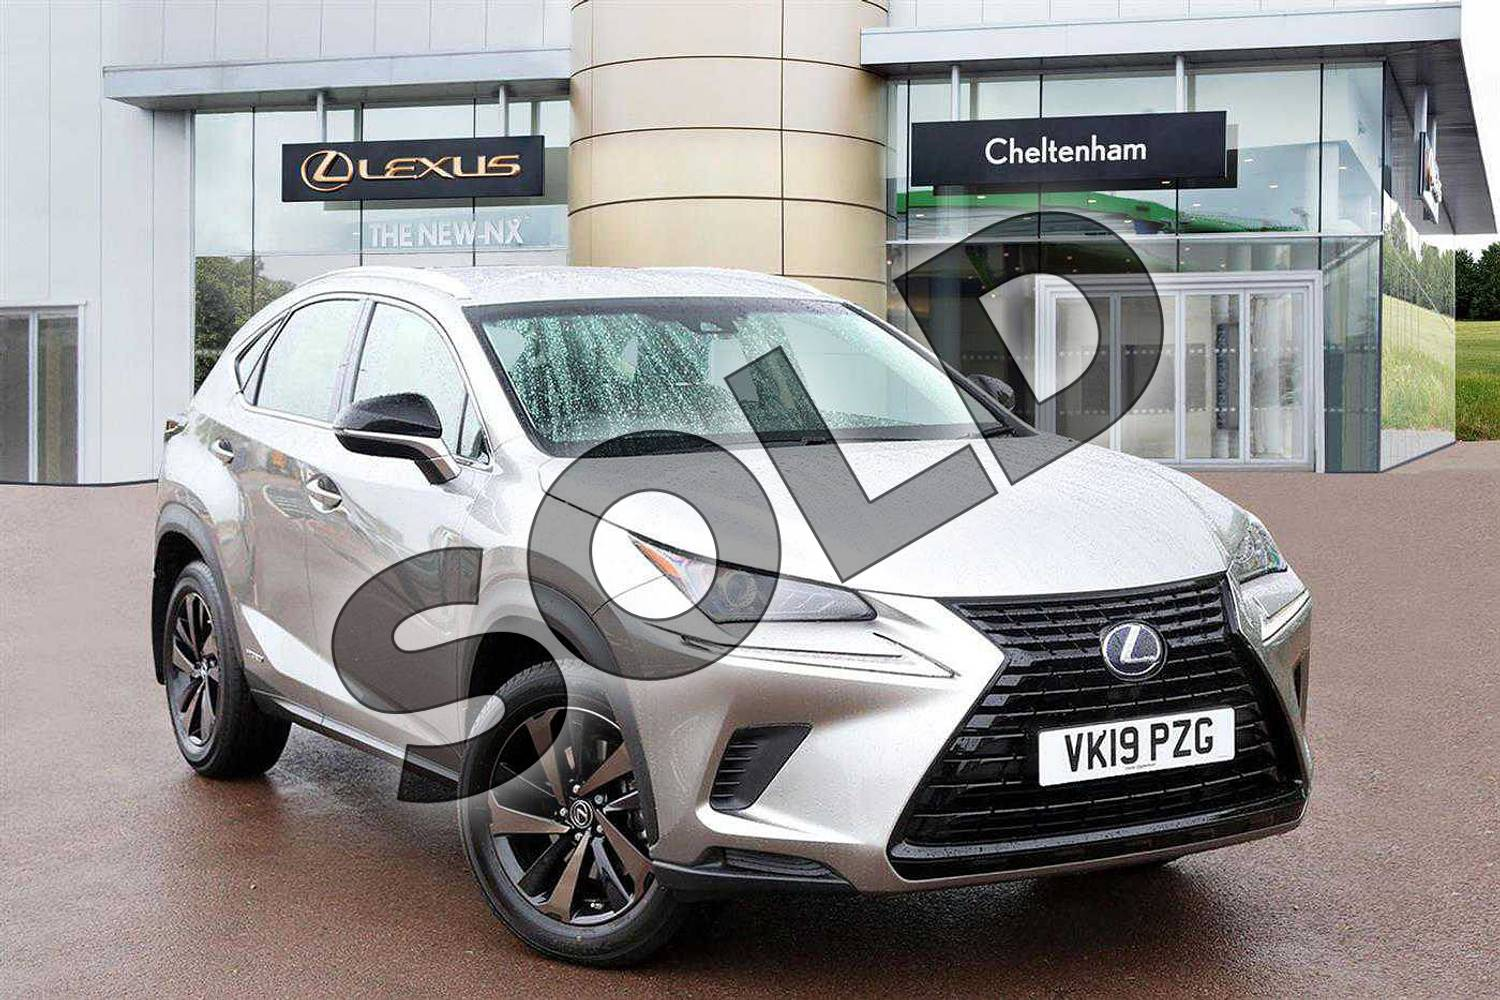 2019 Lexus NX Estate 300h 2.5 5dr CVT (Sport pack) in Sonic Titanium at Lexus Cheltenham